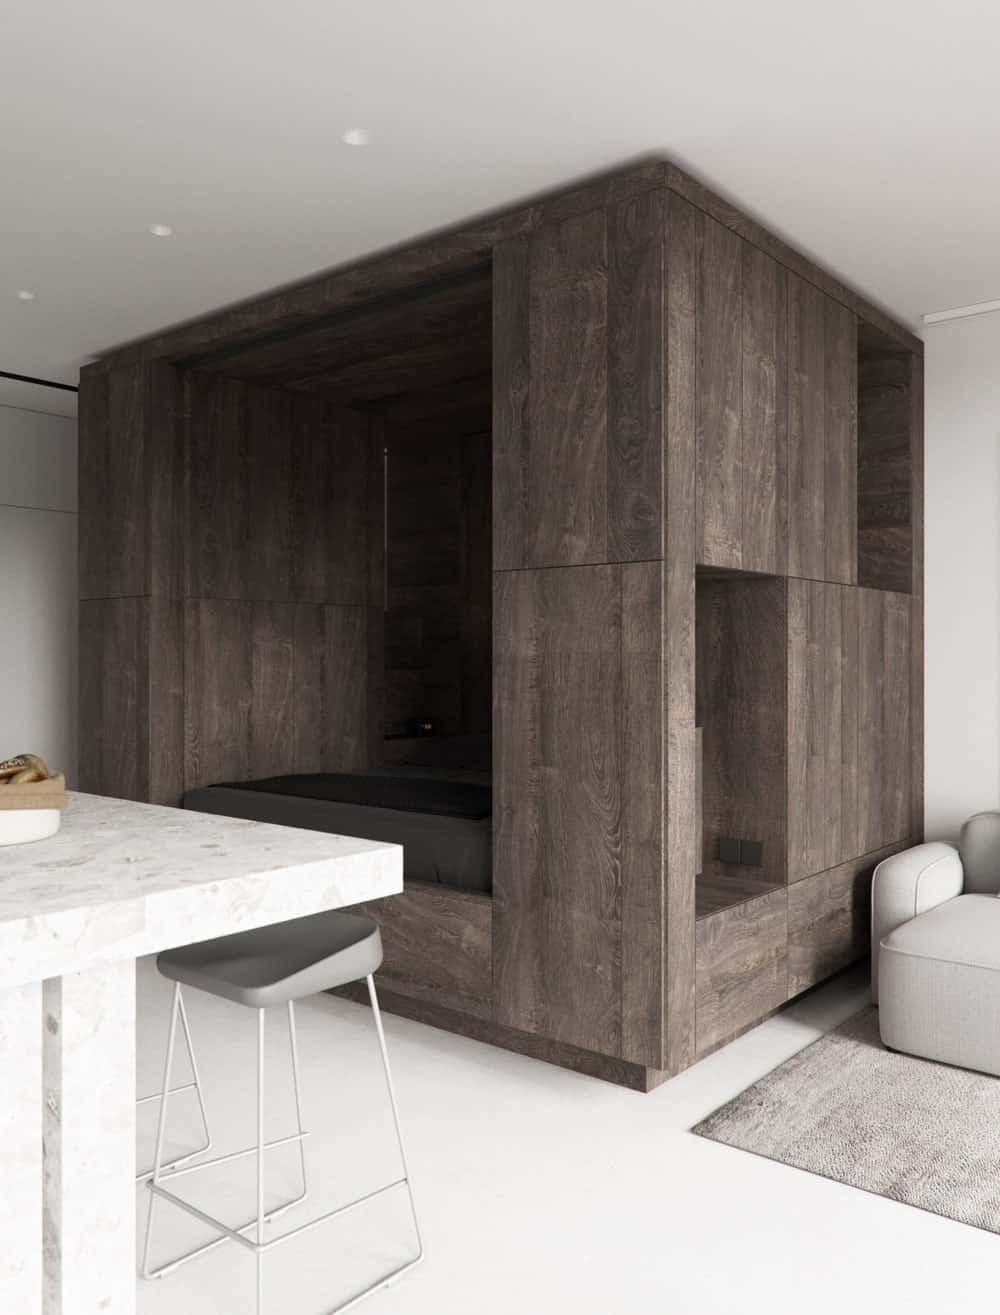 This view shows that the kitchen island is paired with stools and on the other side is a large wooden structure that houses the bed and also serves as a shelving for the living room.